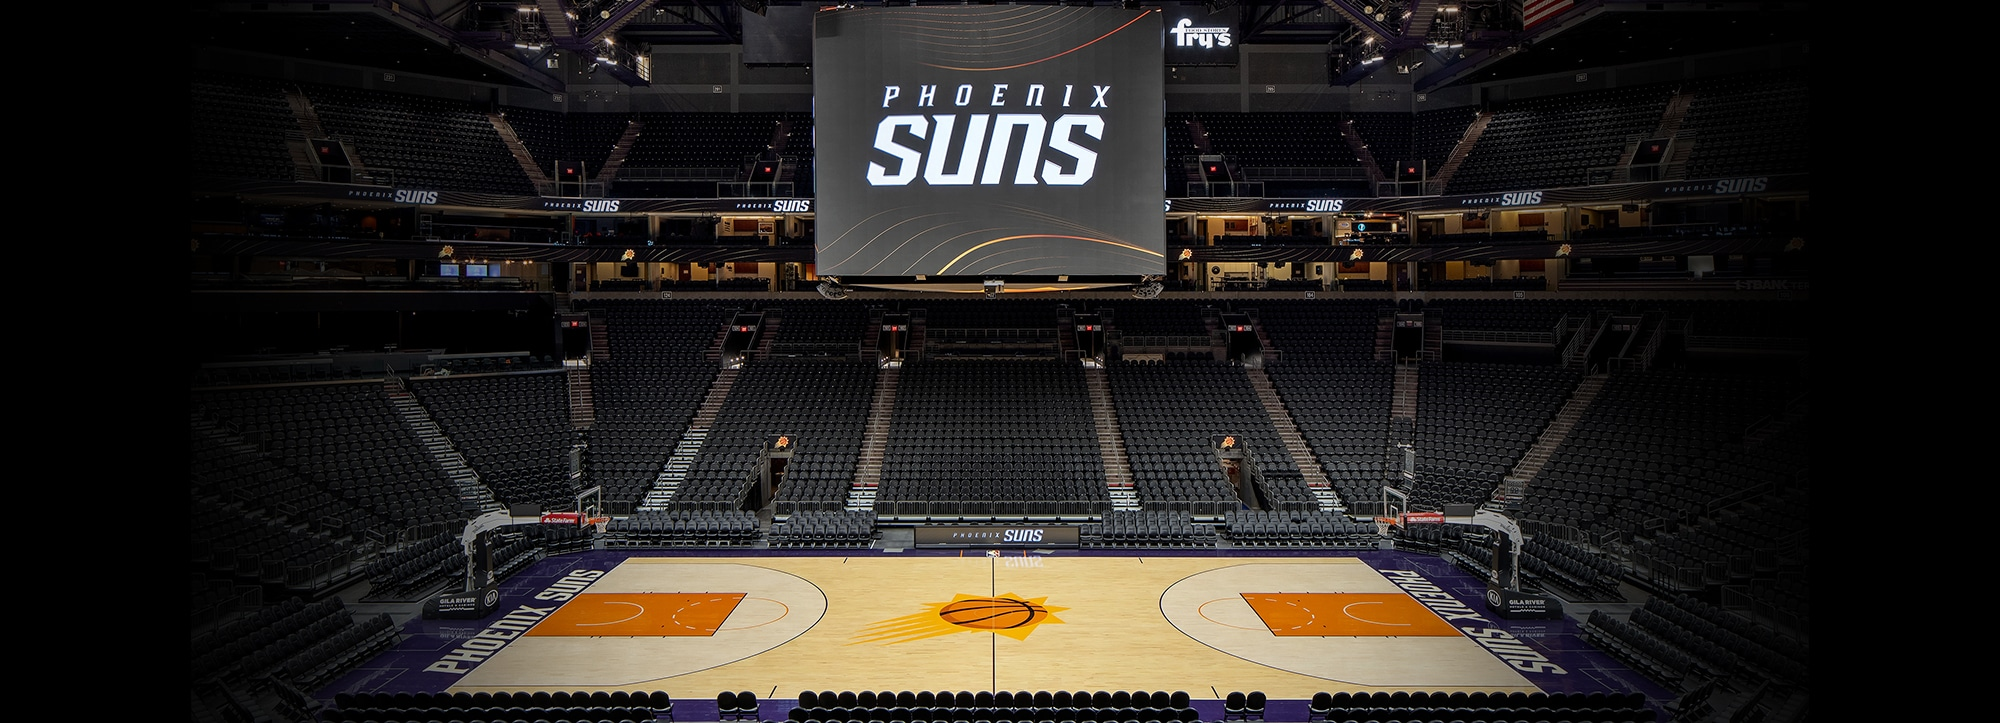 PHOENIX SUNS INTRODUCE THE RALLY PACK WITH NEXT TICKET AVAILABILITY ON APRIL 5